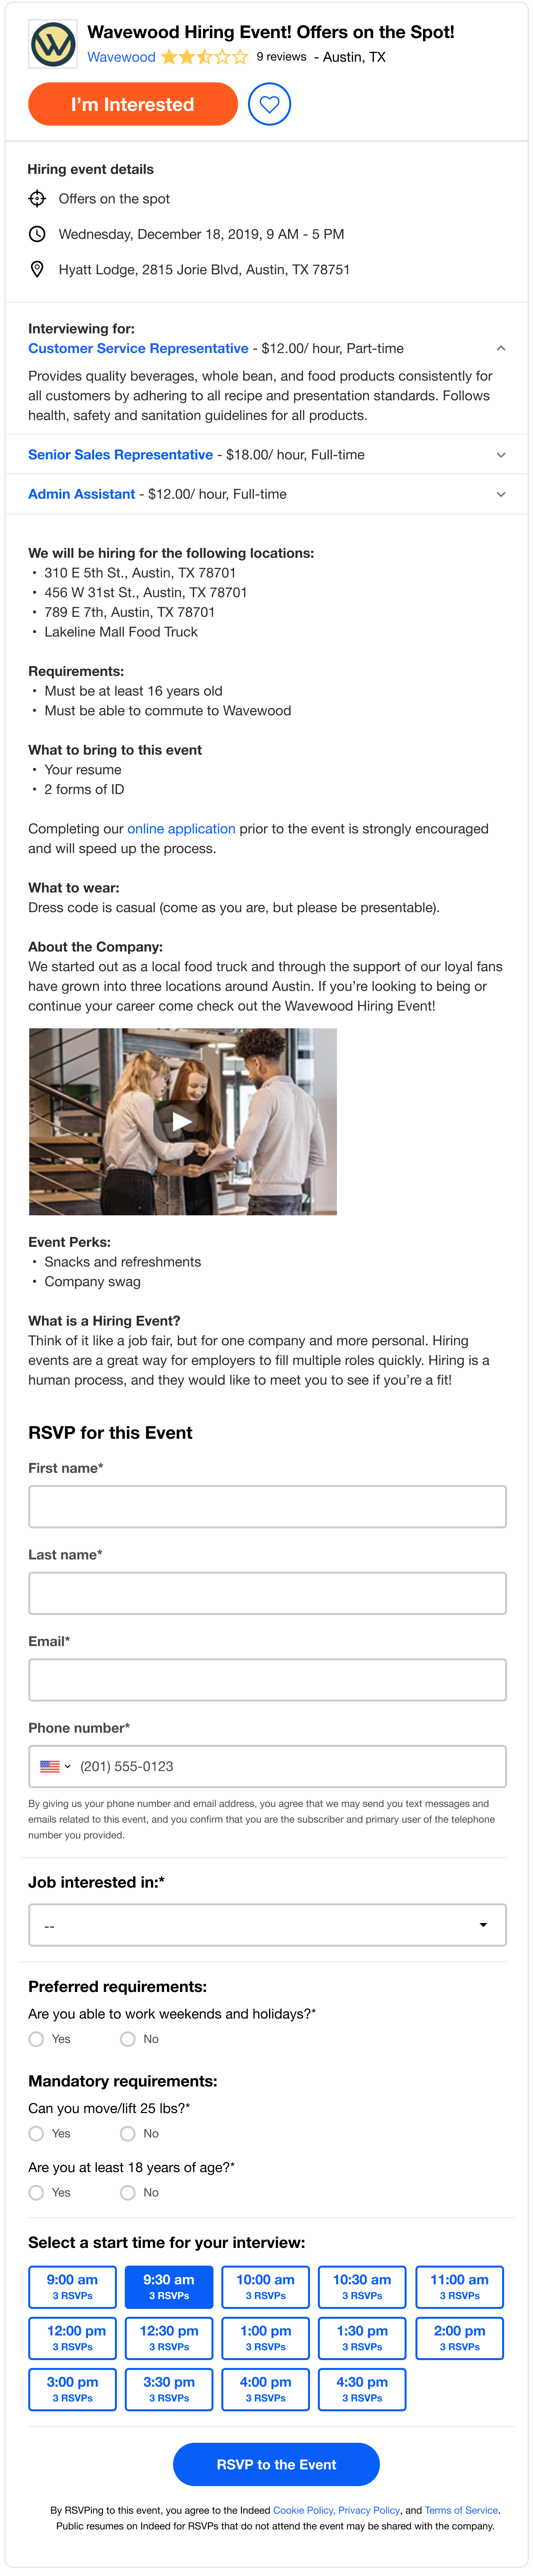 hiring_events_details